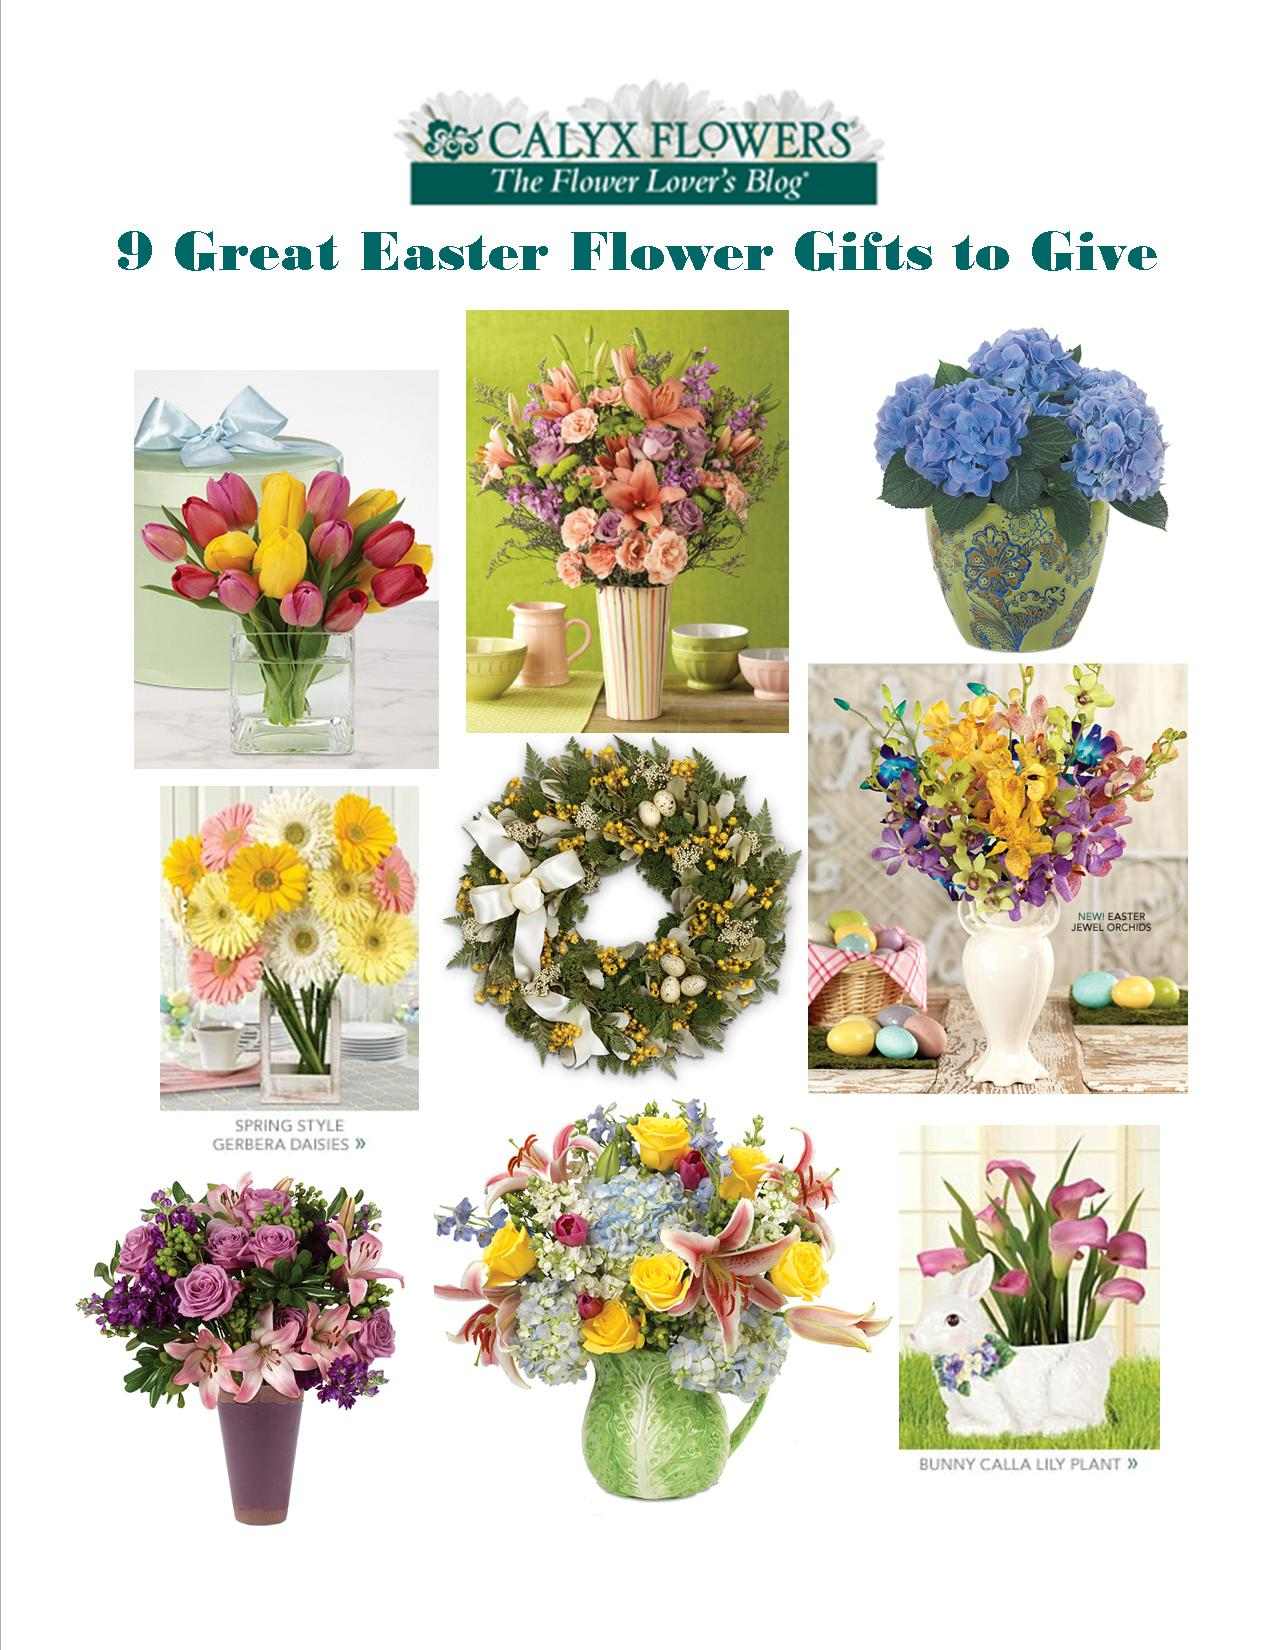 9 great flower gifts to give at easter calyx flowers inc springtime tulips hatbox bouquet shown top left set the scene with the gorgeous gift of tulips in a rainbow of colors what sets this gift apart from negle Image collections